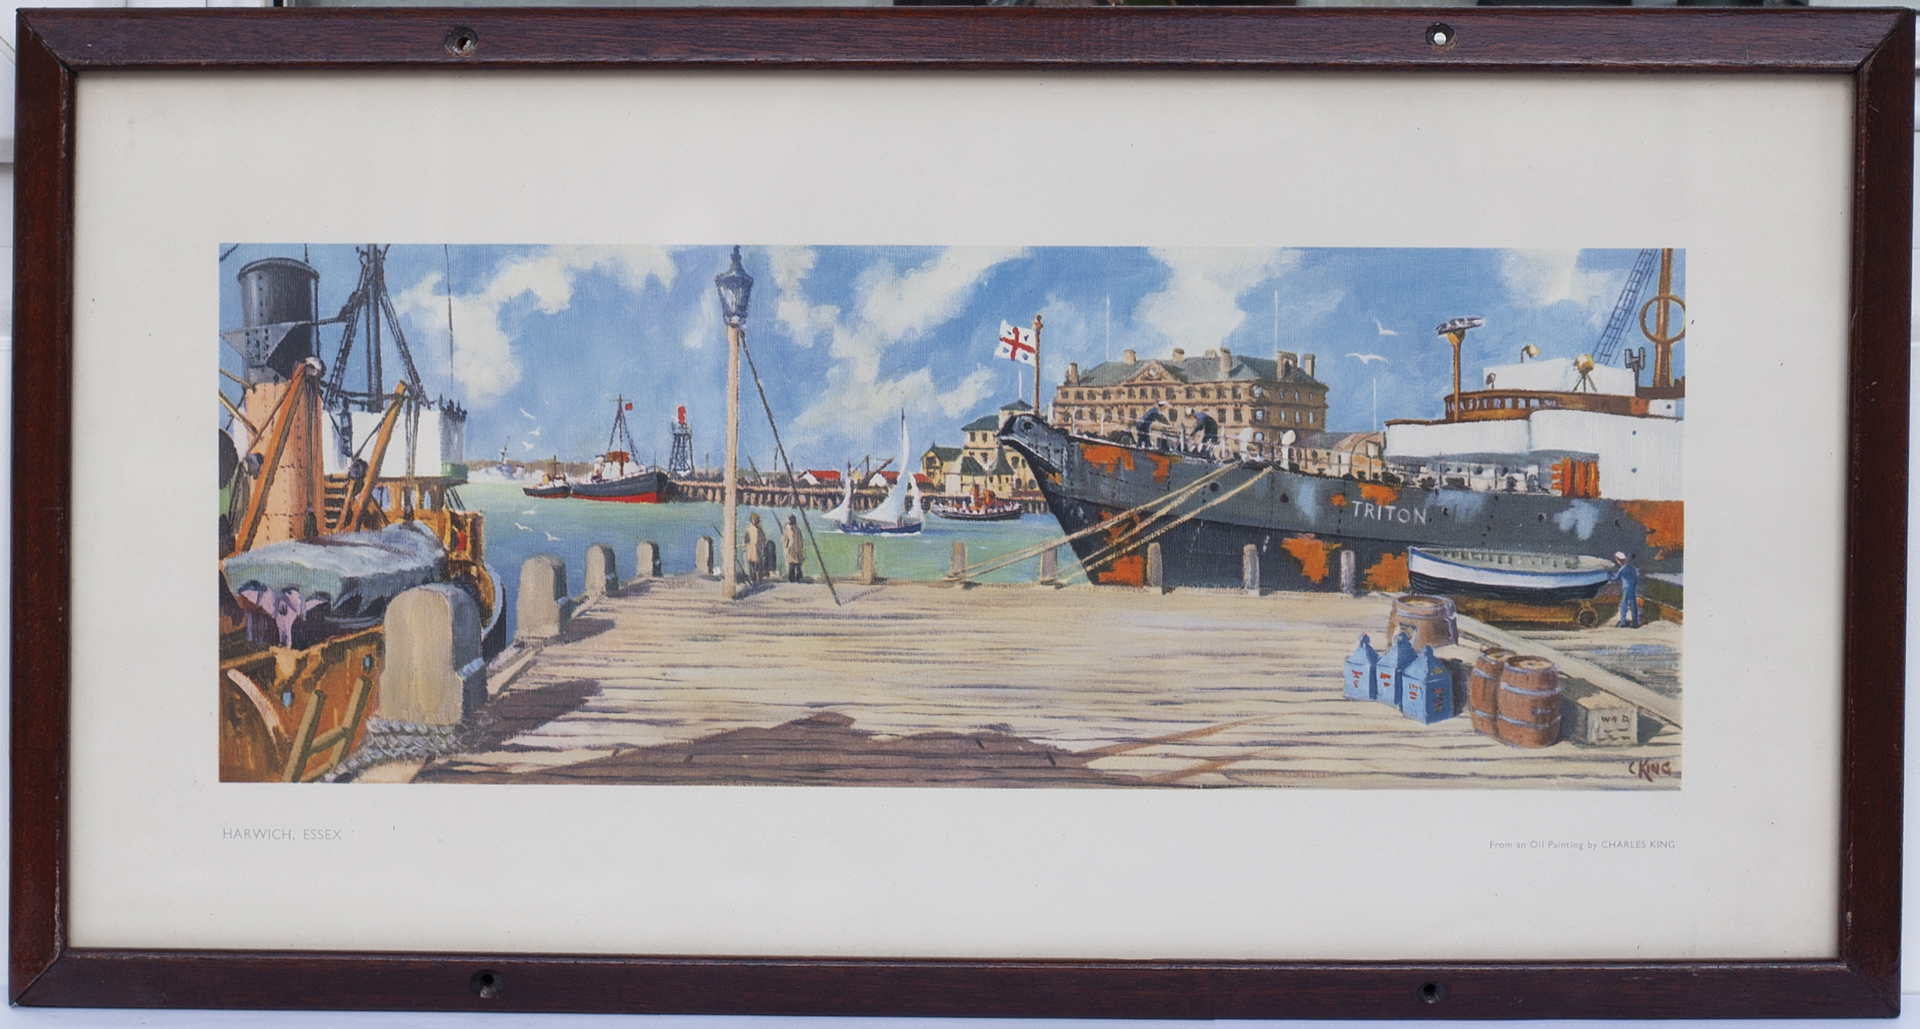 Carriage print HARWICH ESSEX by Charles King. In an original type glazed frame.